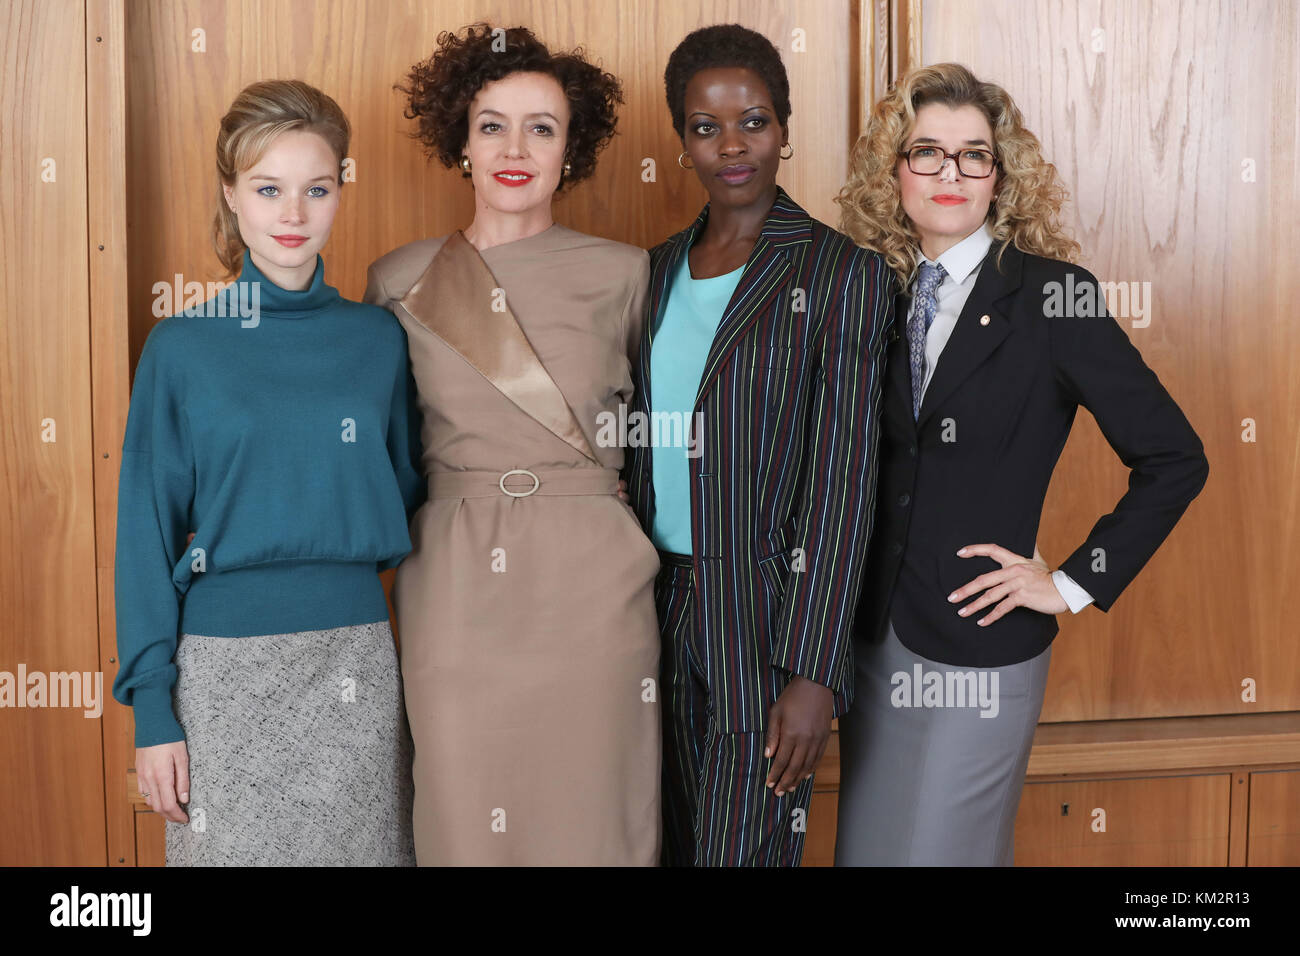 Berlin, Germany. 04th Dec, 2017. Actresses Sonja Gerhardt (left to right), Maria Schrader, Florence Kasumba and - Stock Image